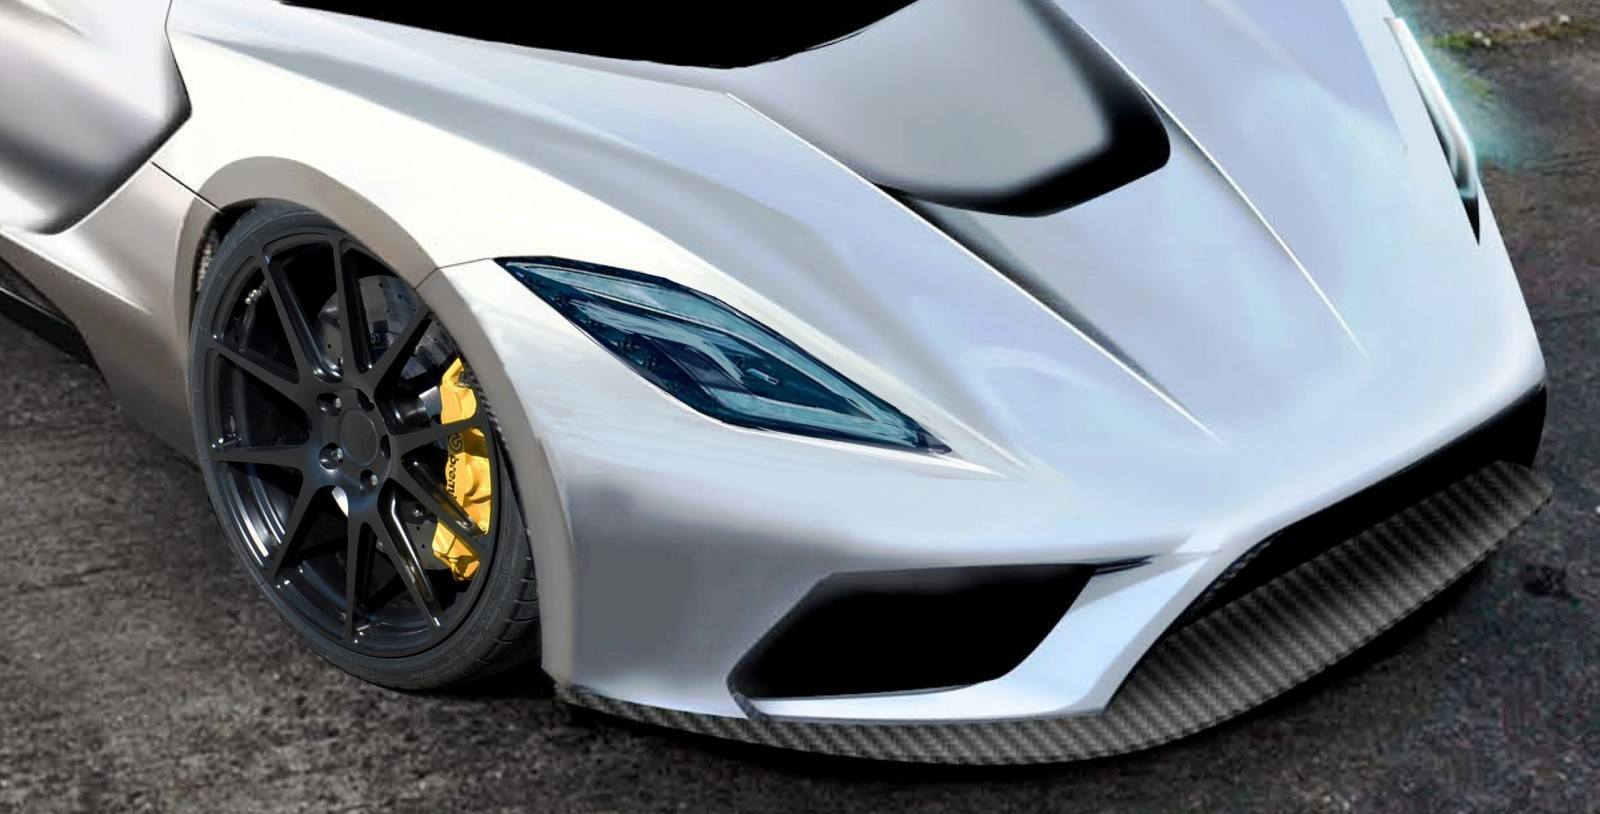 2015 Hennessey Venom F5 Seeks Real 290MPH VMax Via New V8TT, Active Aero and Low-Drag Design 4